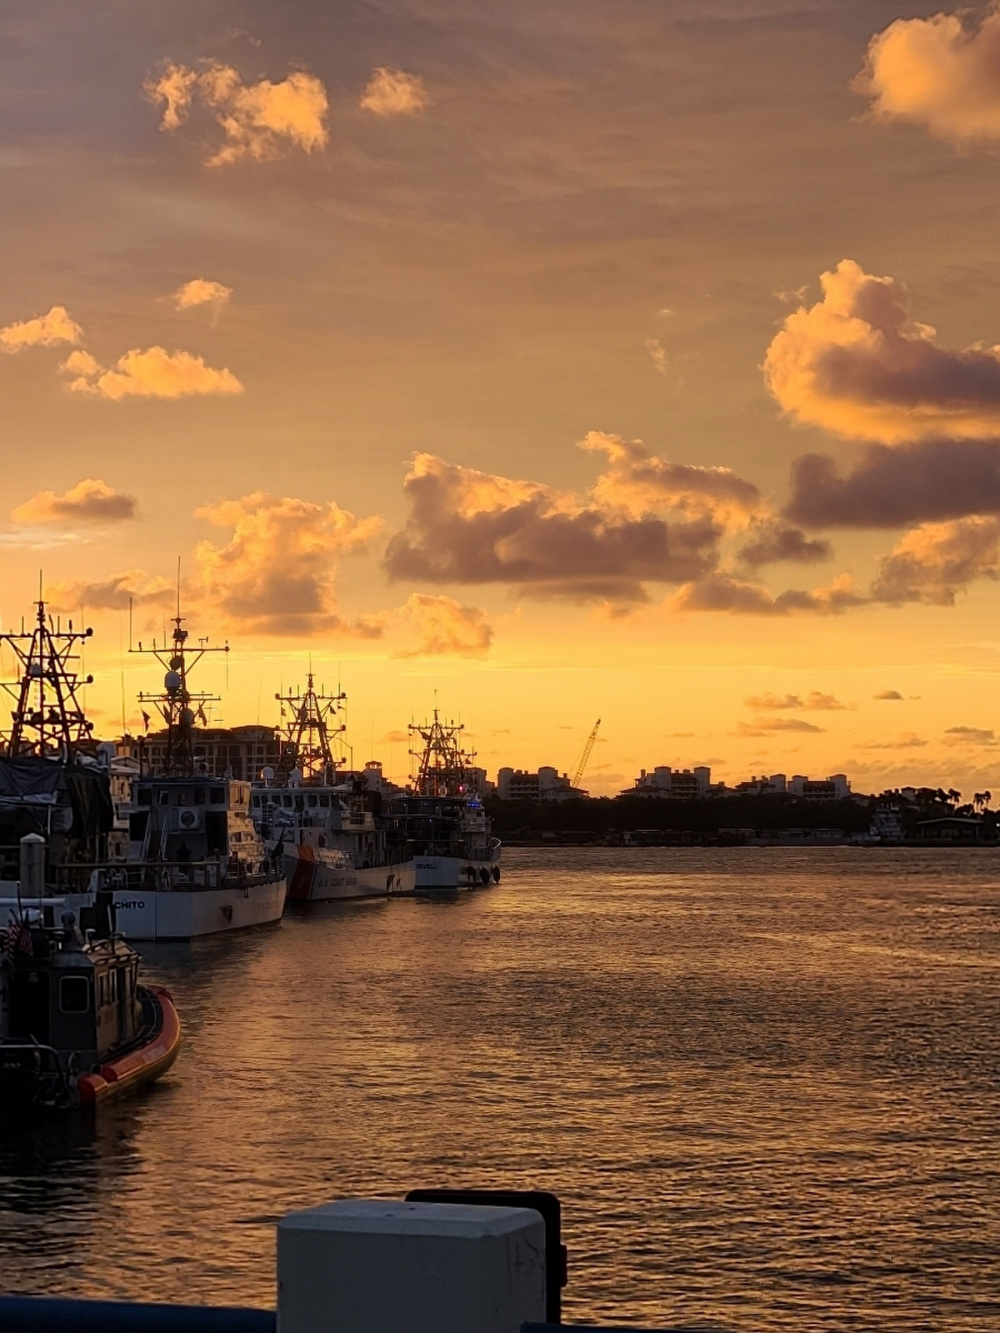 Coast Guard crews prepare for the day at sunrise at Base Miami Beach and Sector Miami as the cutters and small boats are moored Dec. 4, 2020. (U.S. Coast Guard photo by Chief Petty Officer Victor Cruz)